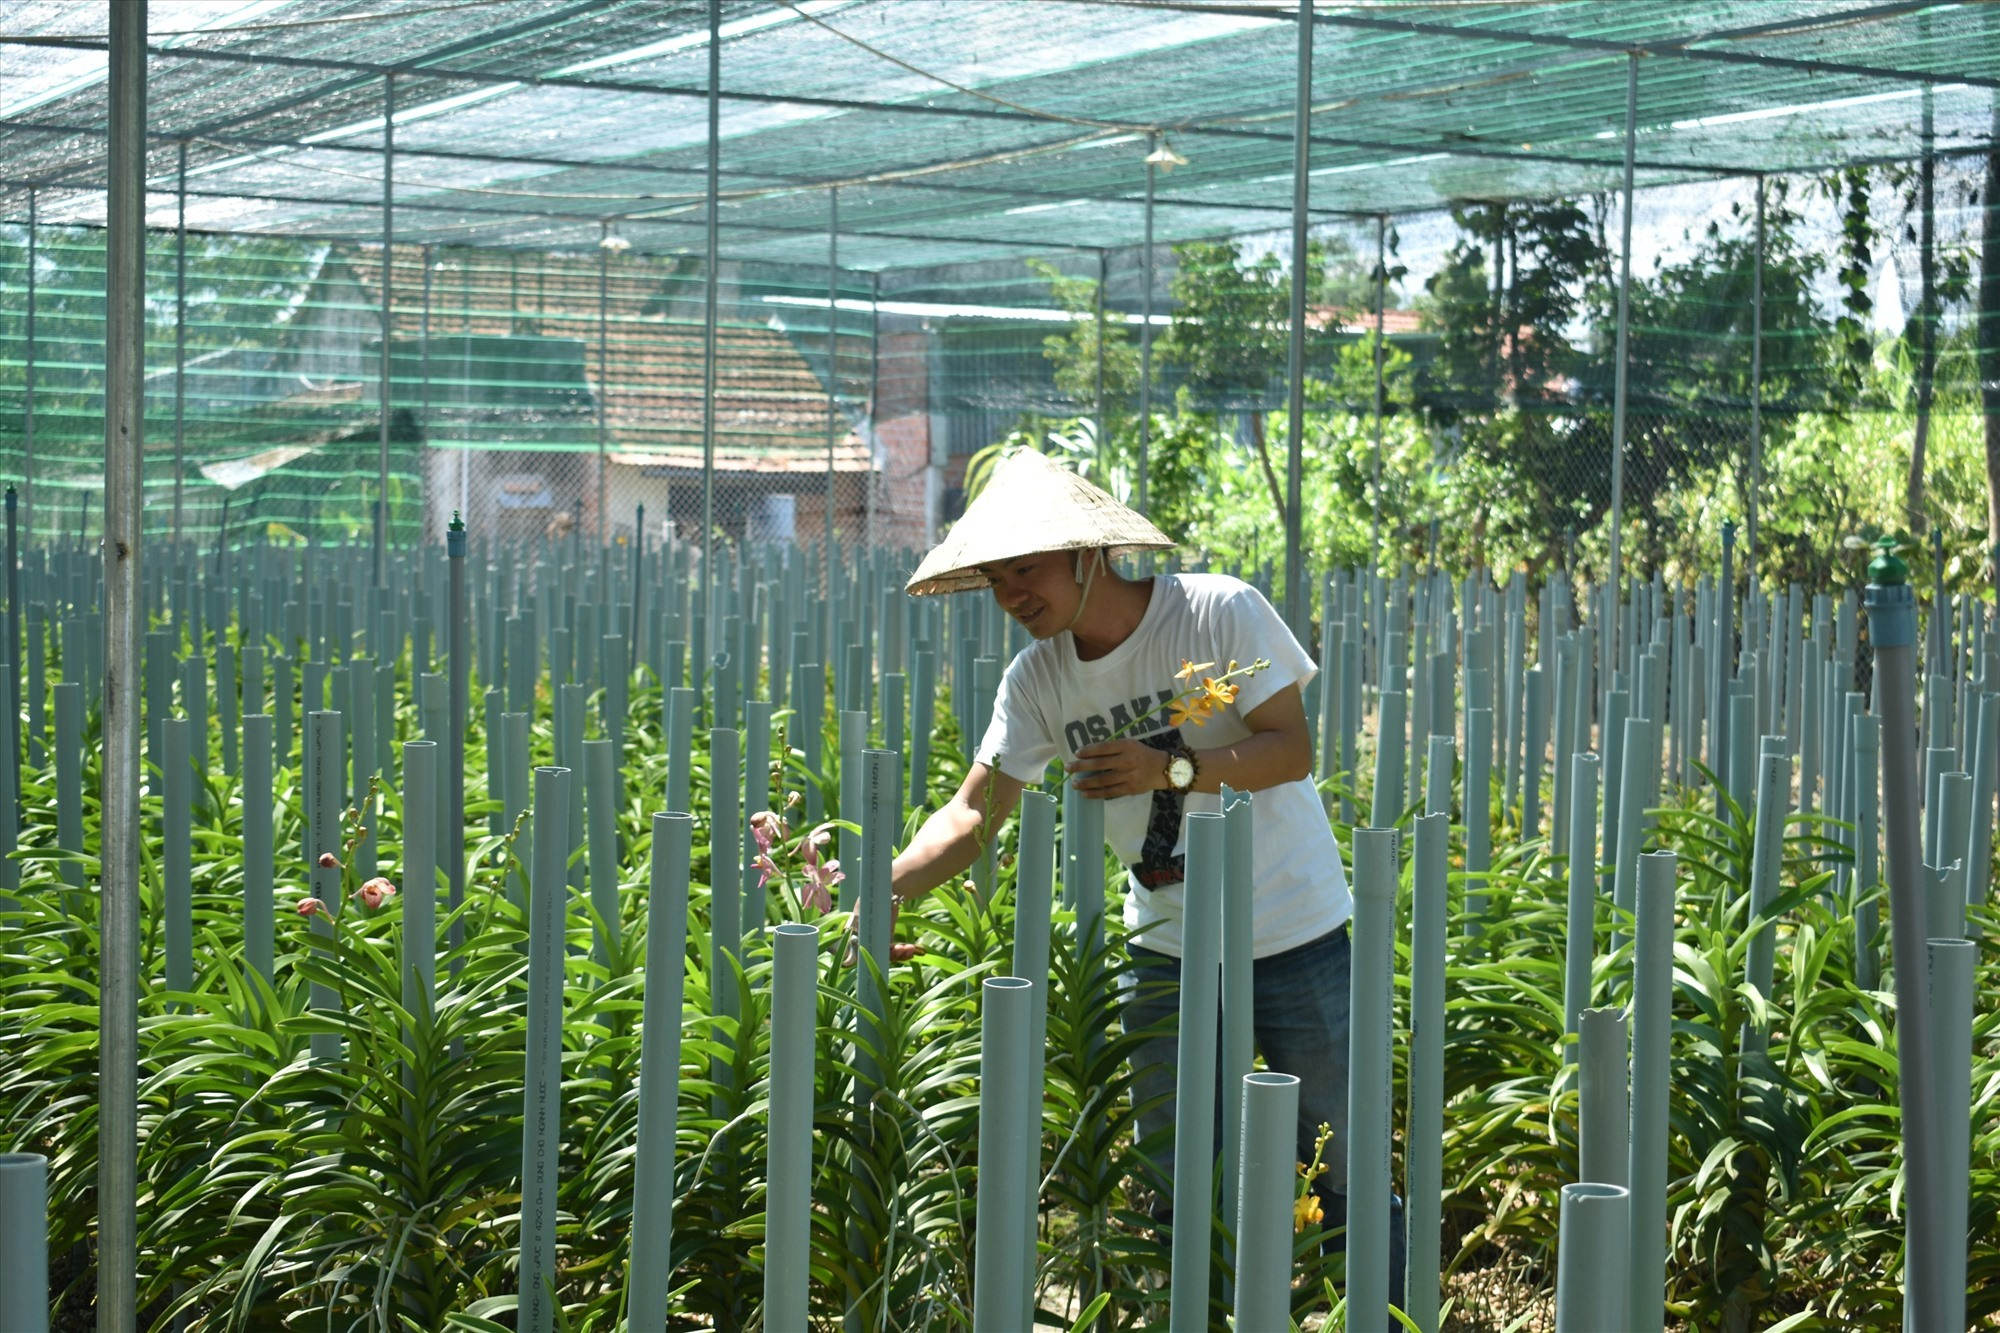 Huynh Duc Anh Thi inside his green garden